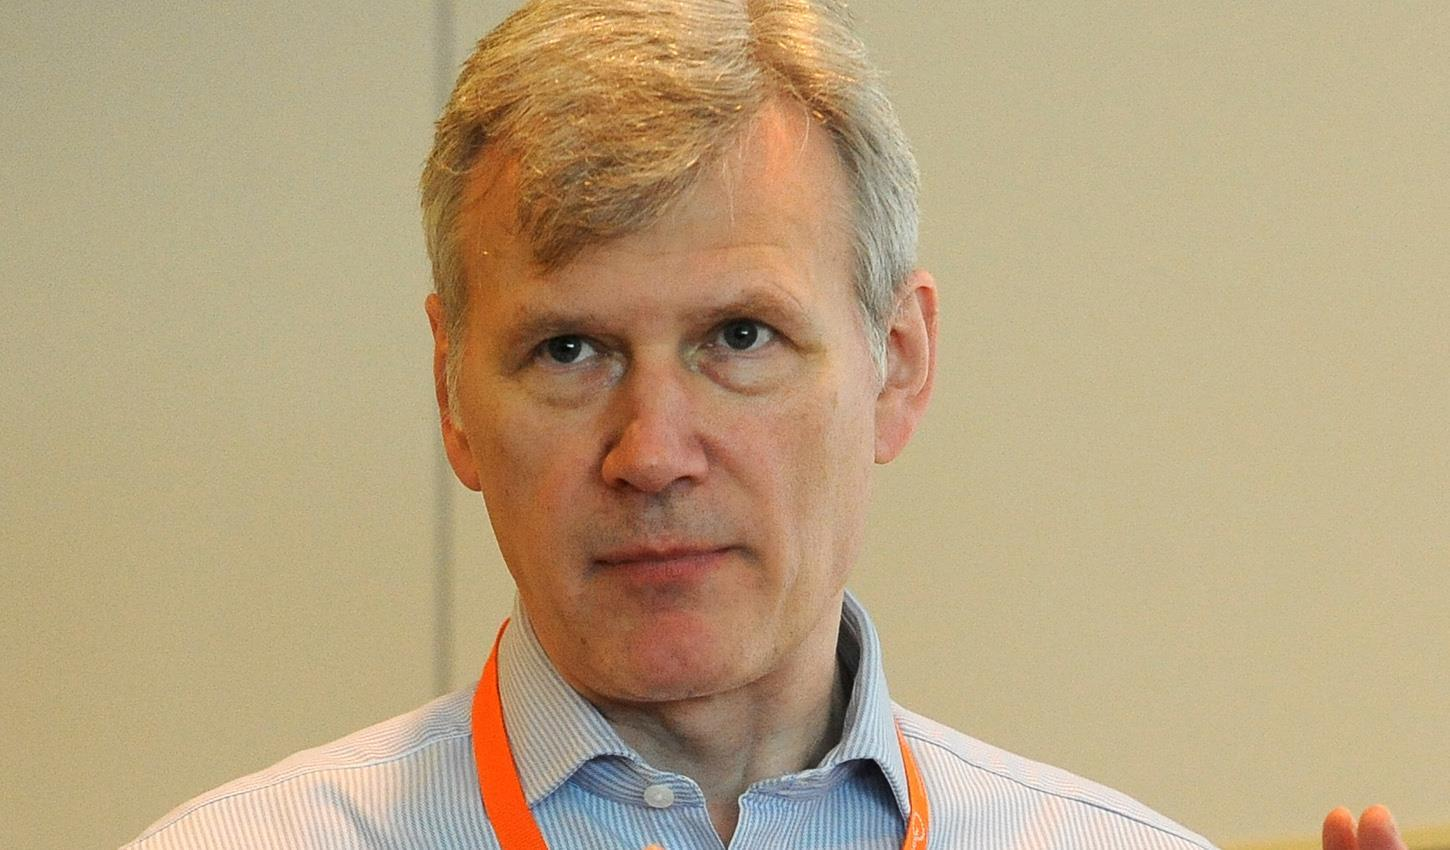 Exclusive: Sir David Dalton to step down from CEO role